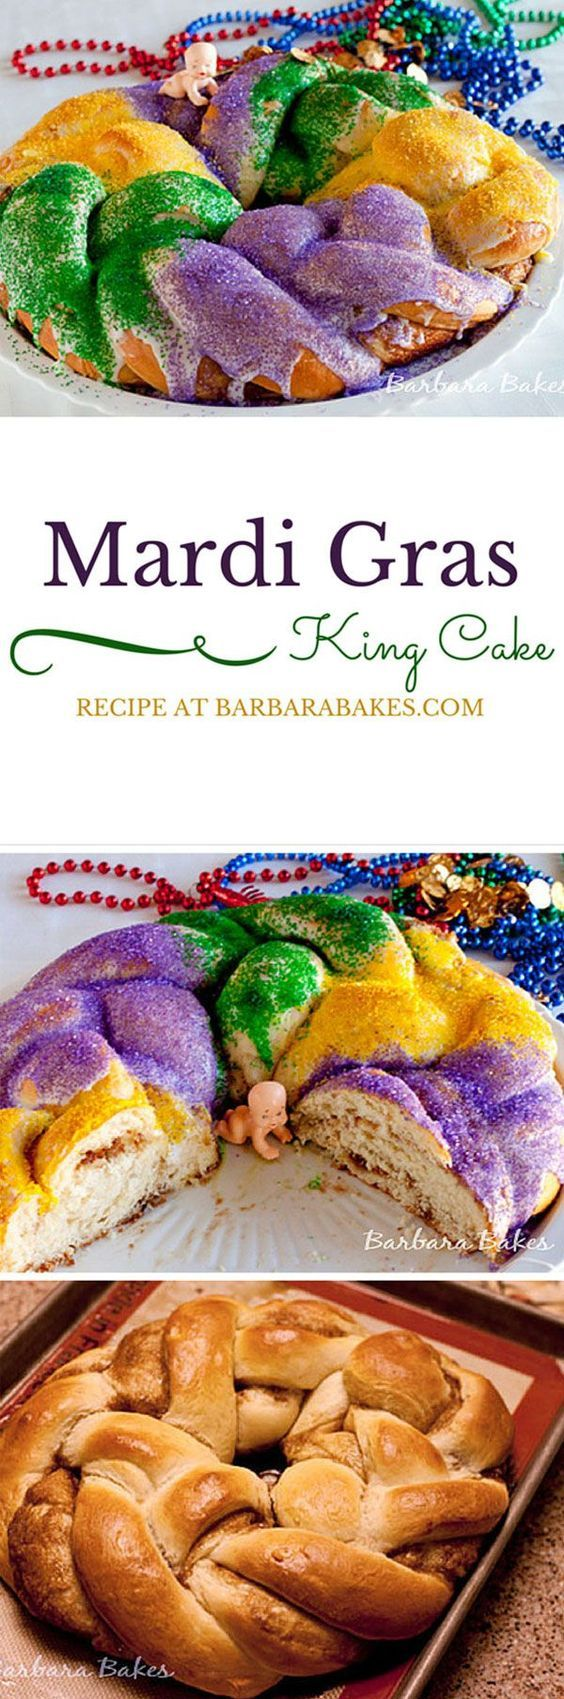 25 best ideas about mardi gras food on pinterest